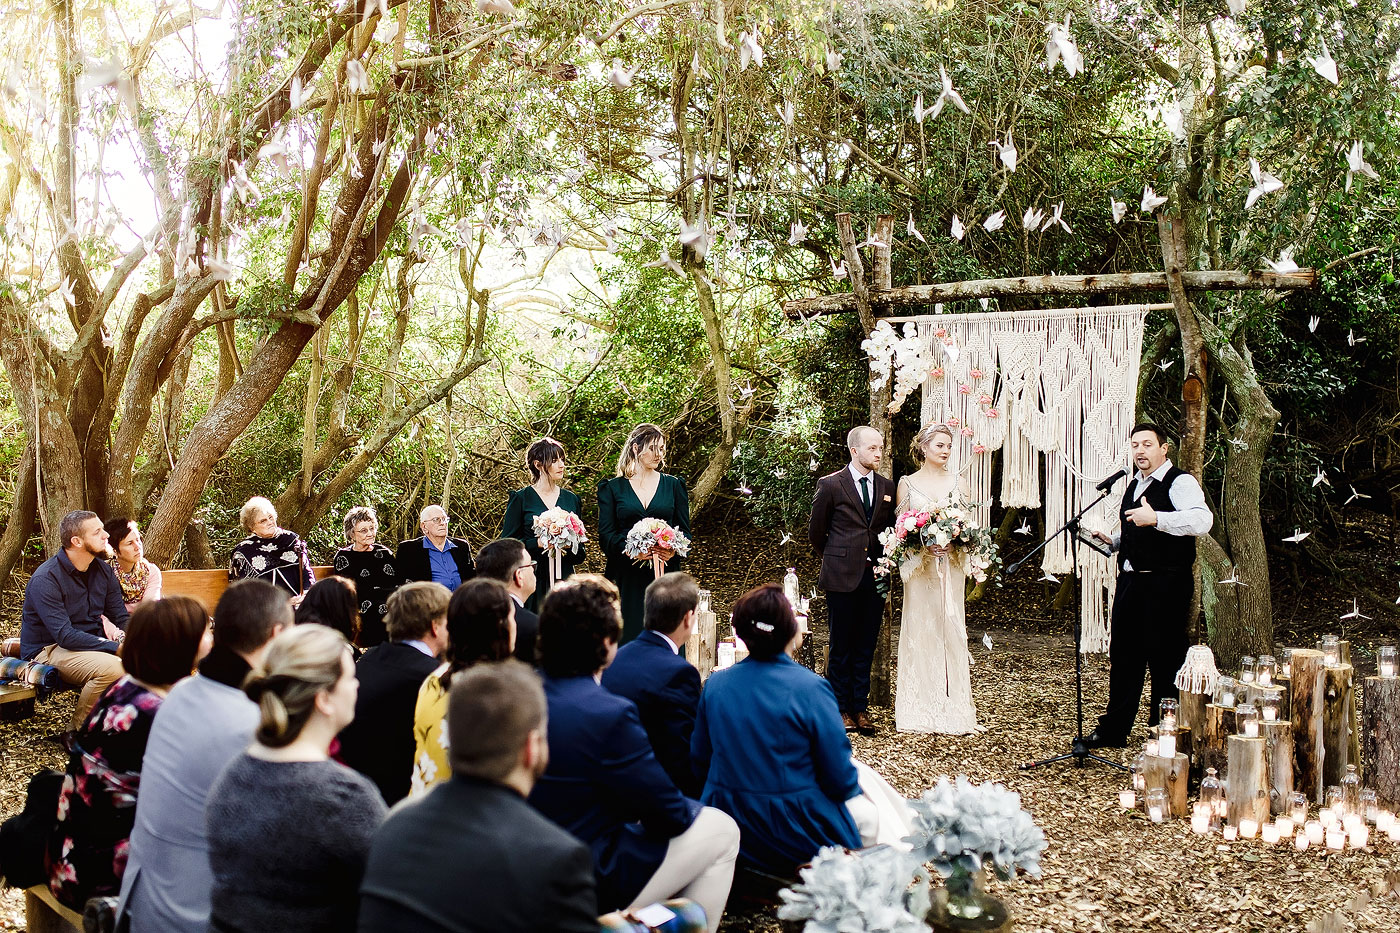 Forest Wedding Ceremony in Plettenberg Bay